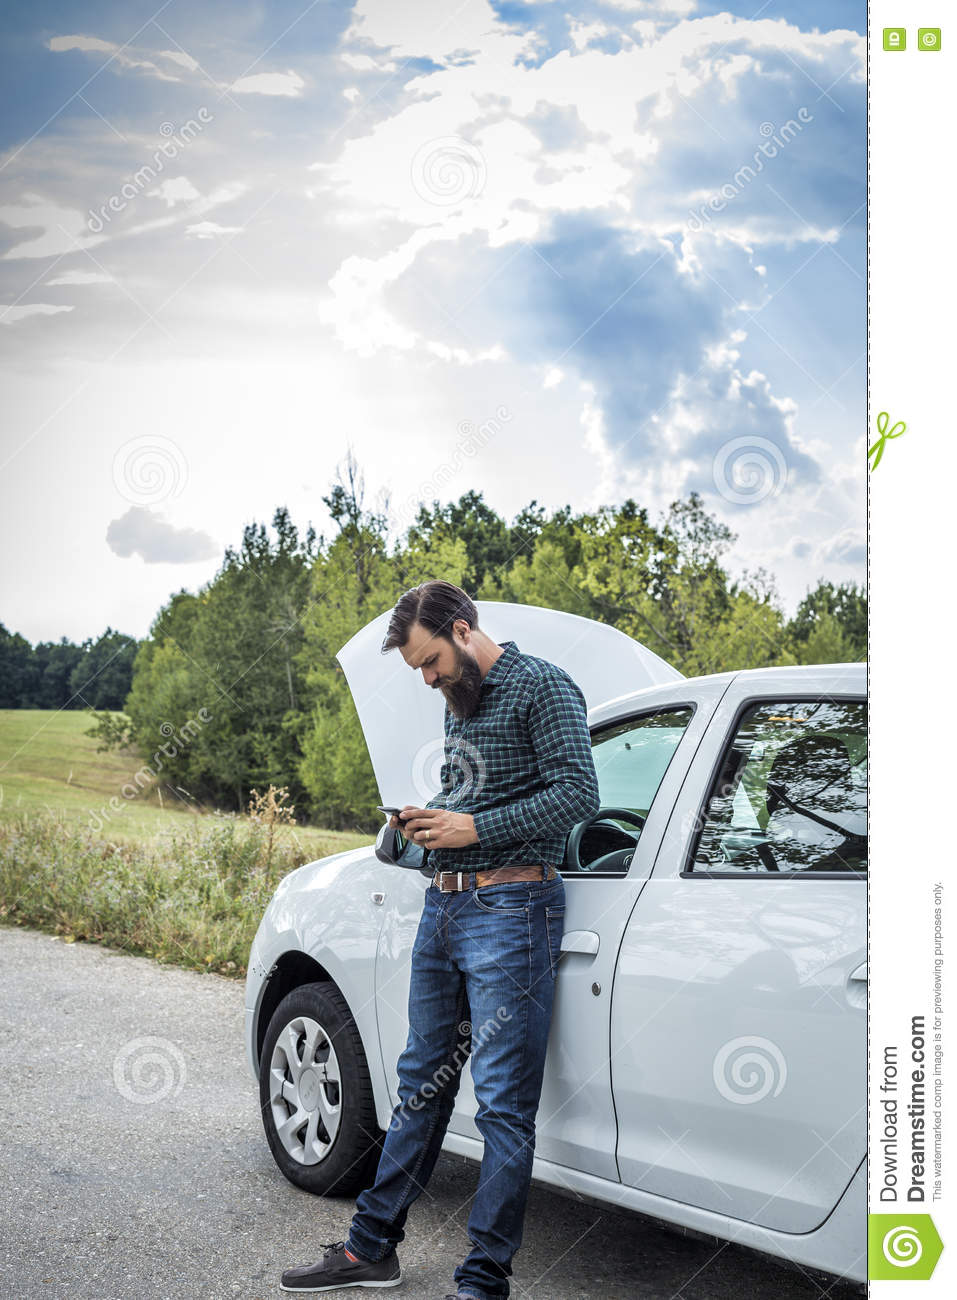 Broken Down Abandoned Stock Photos Broken Down Abandoned: Young Man Using His Cell Phone Next To A Broken Down Car